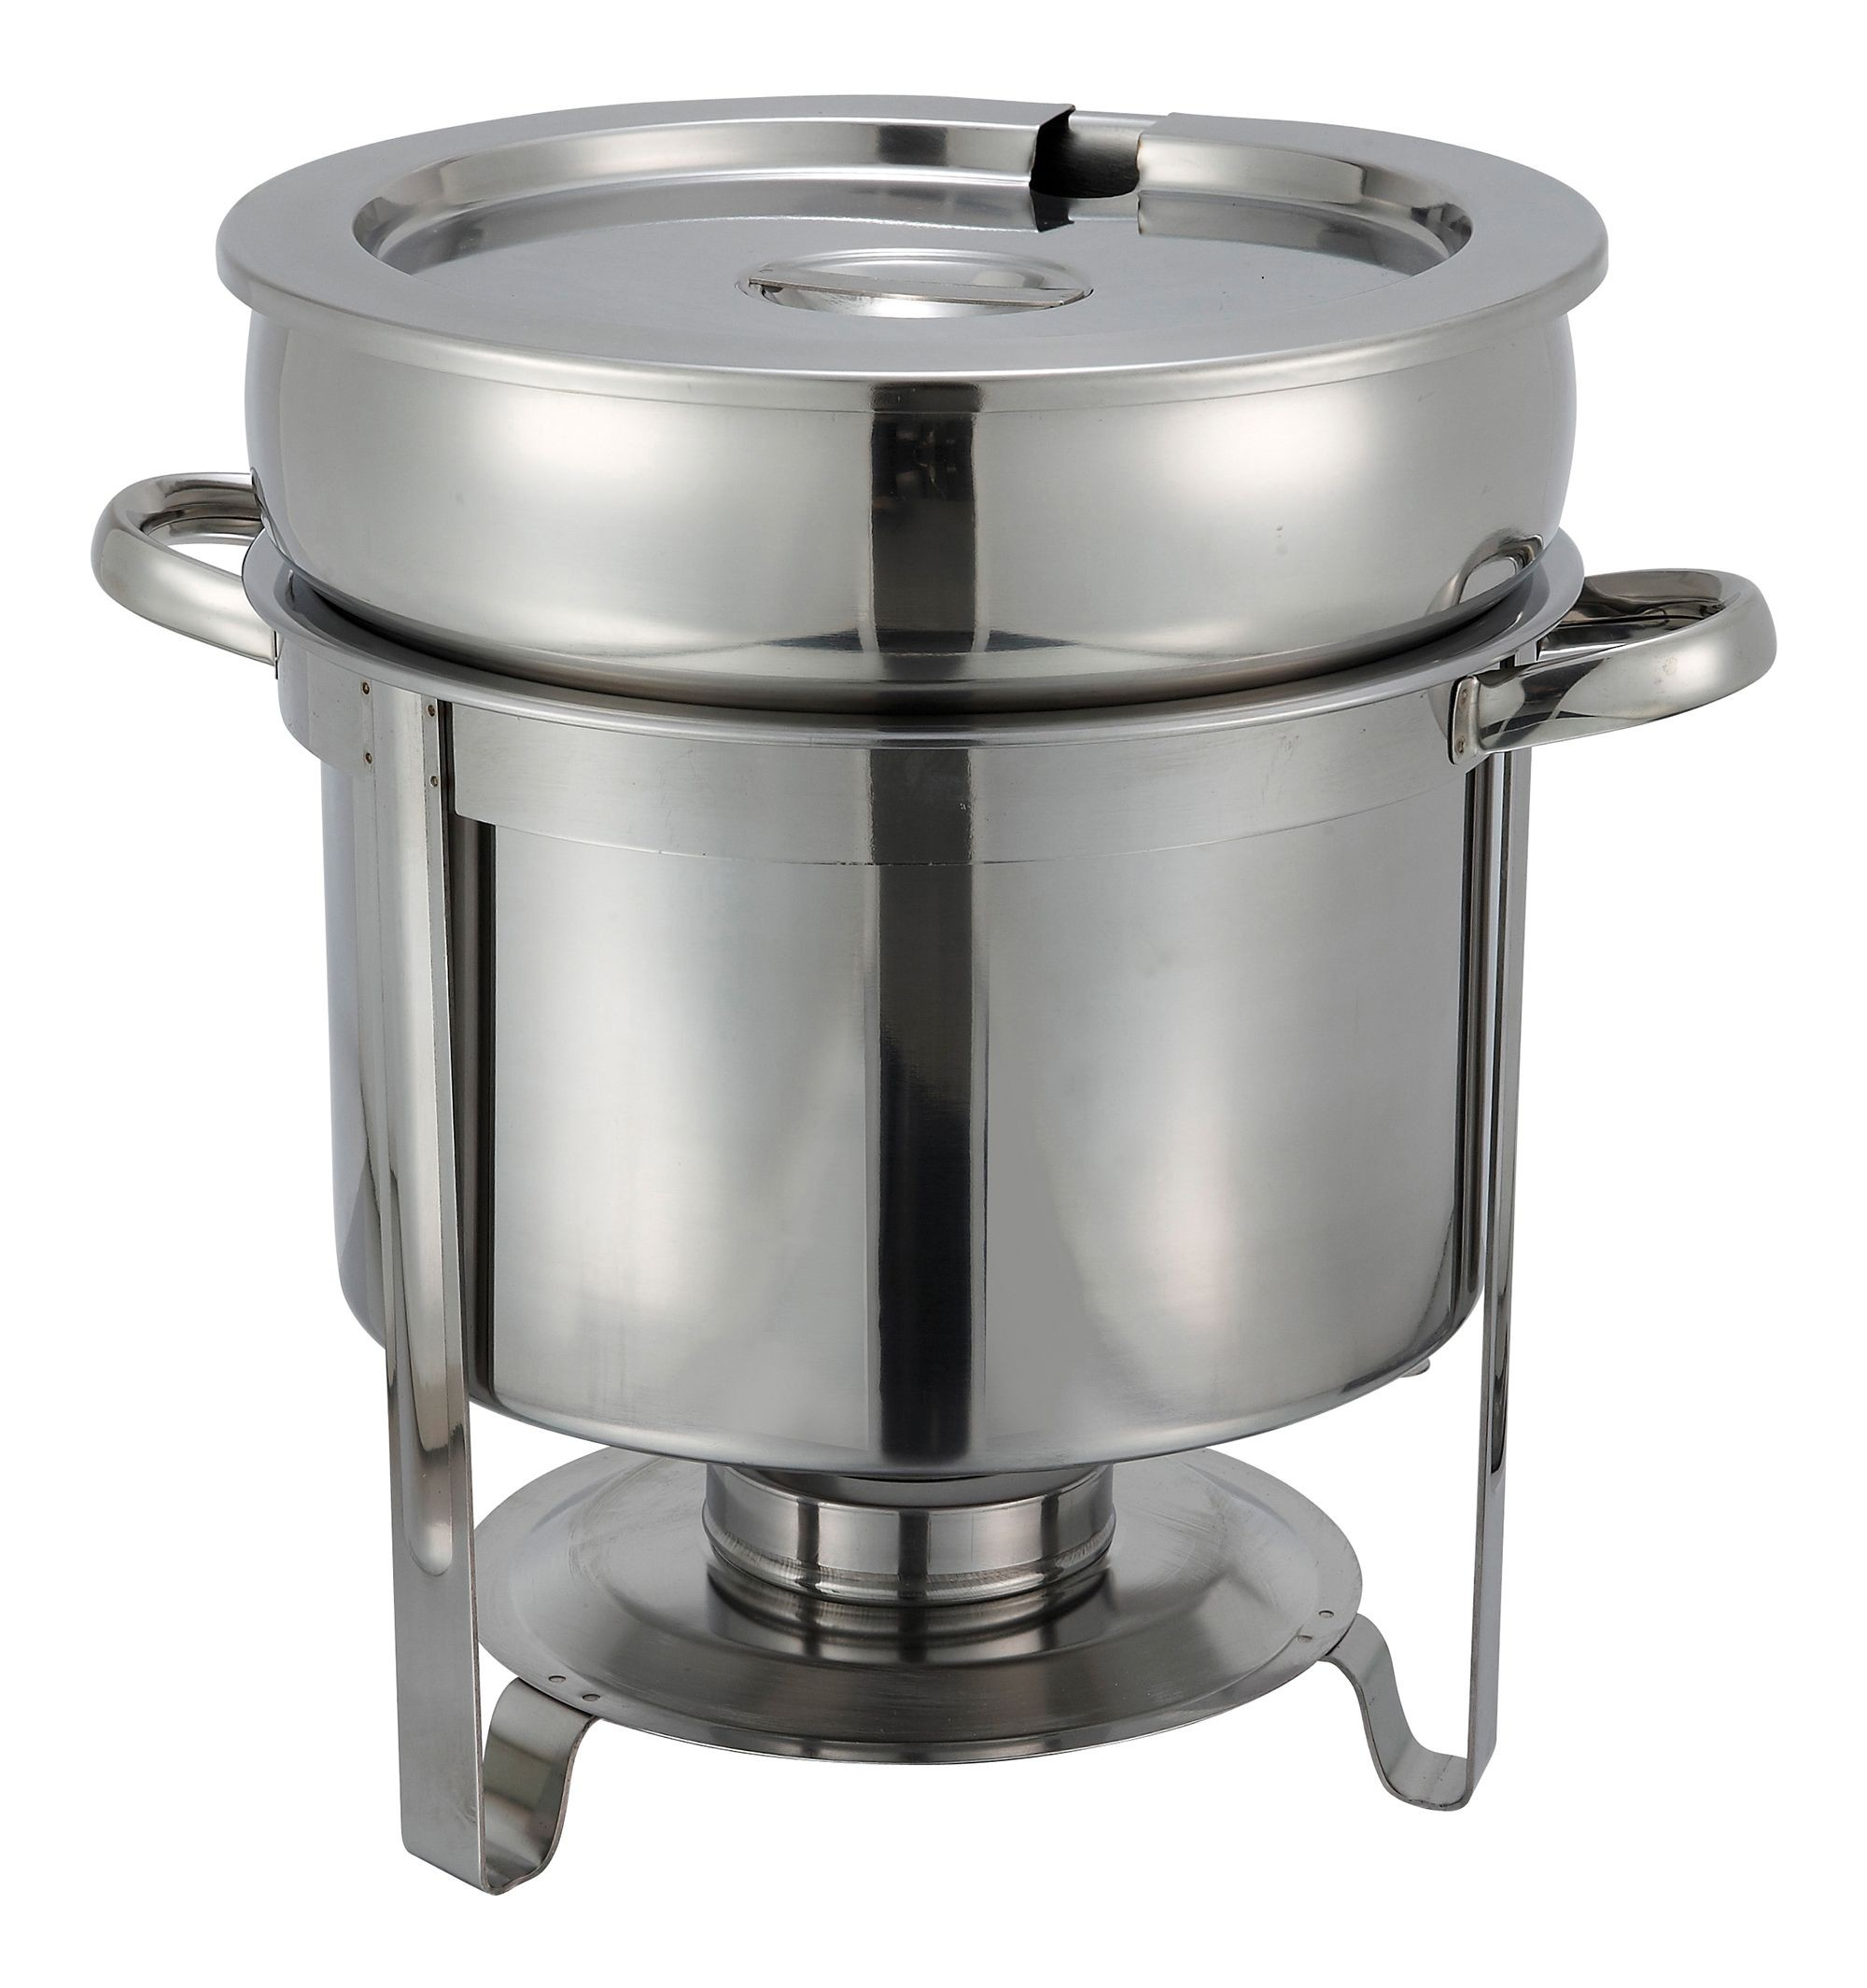 Winco 211 Stainless Steel Soup Chafer 11 Qt.